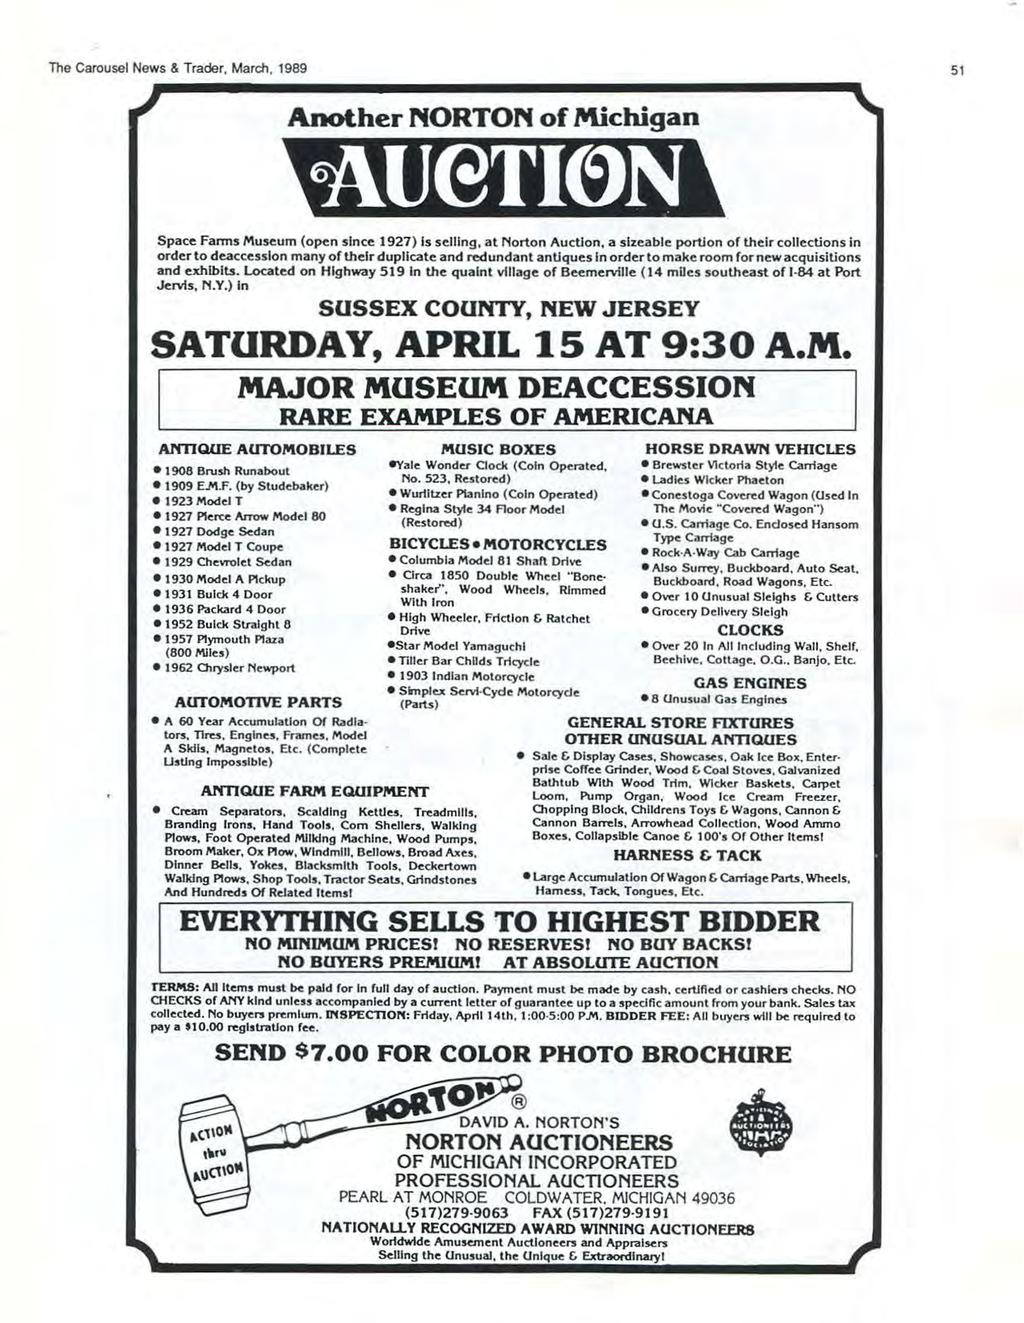 The Carousel News & Trader, March, 1989 51 Another NORTON of Michigan Space Farms Museum (open since 1927) Is selling, at Norton Auction, a sizeable portion of their collections in order to